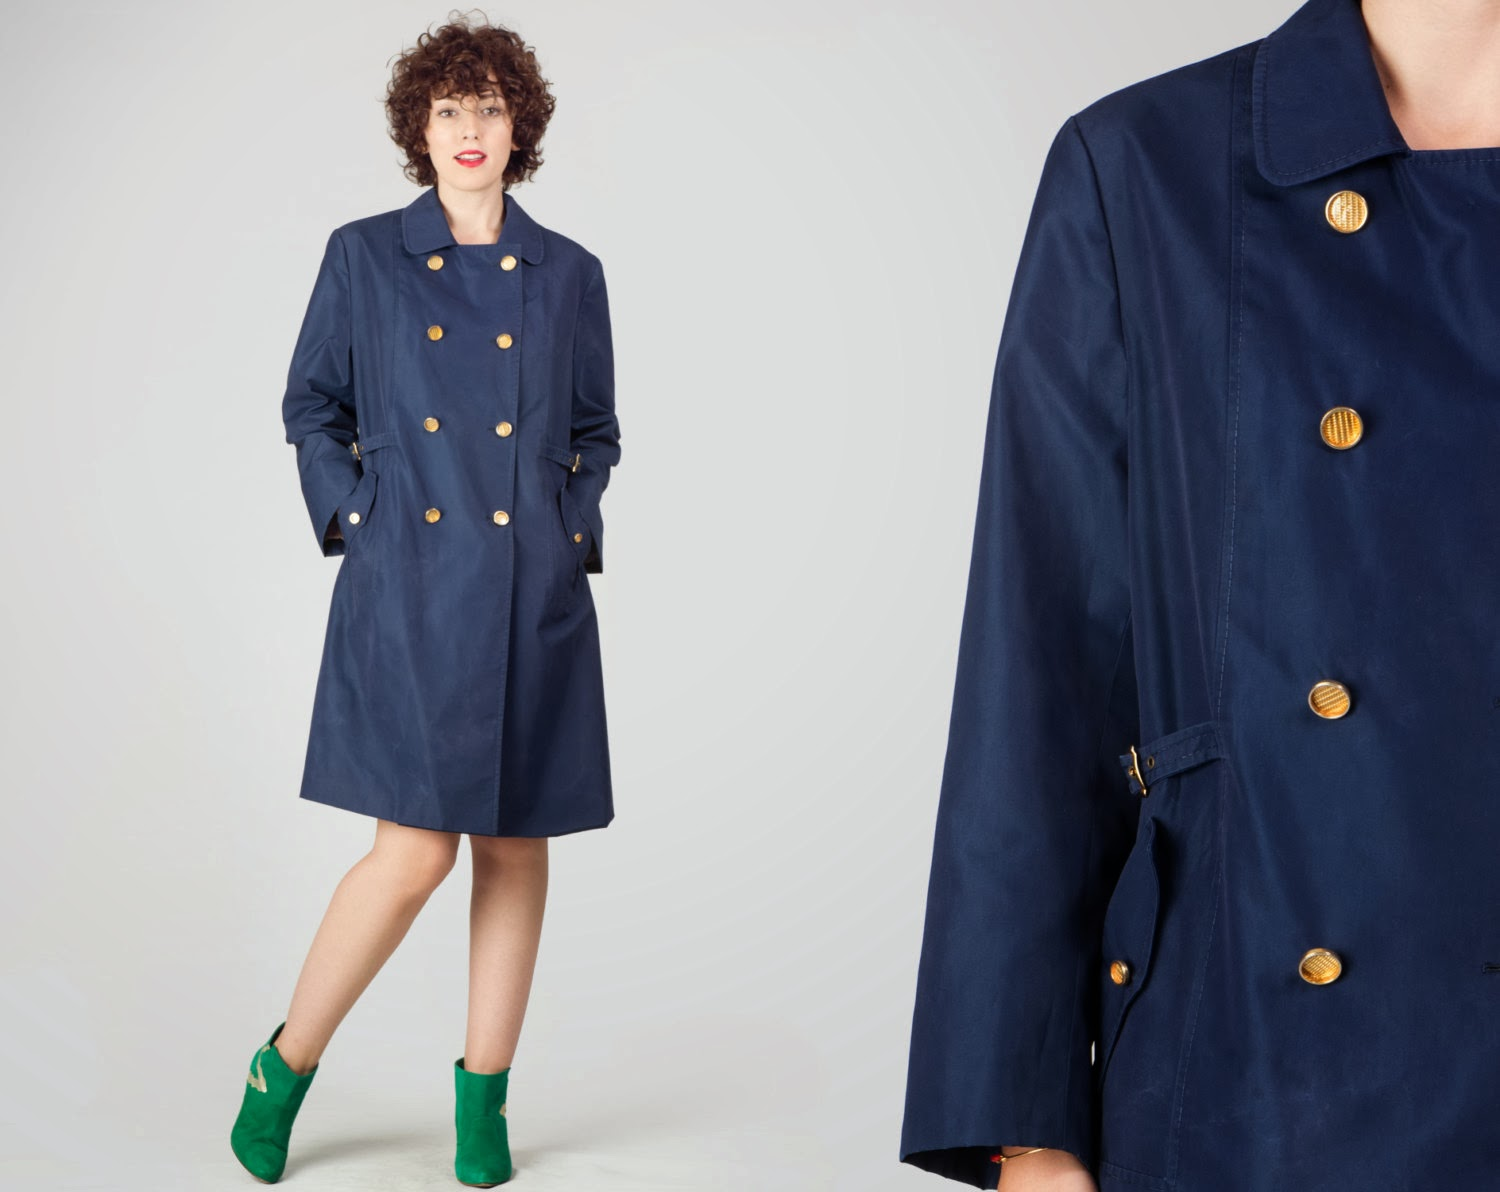 https://www.etsy.com/listing/169345014/60s-navy-double-breasted-trench-nautical?ref=listing-shop-header-1